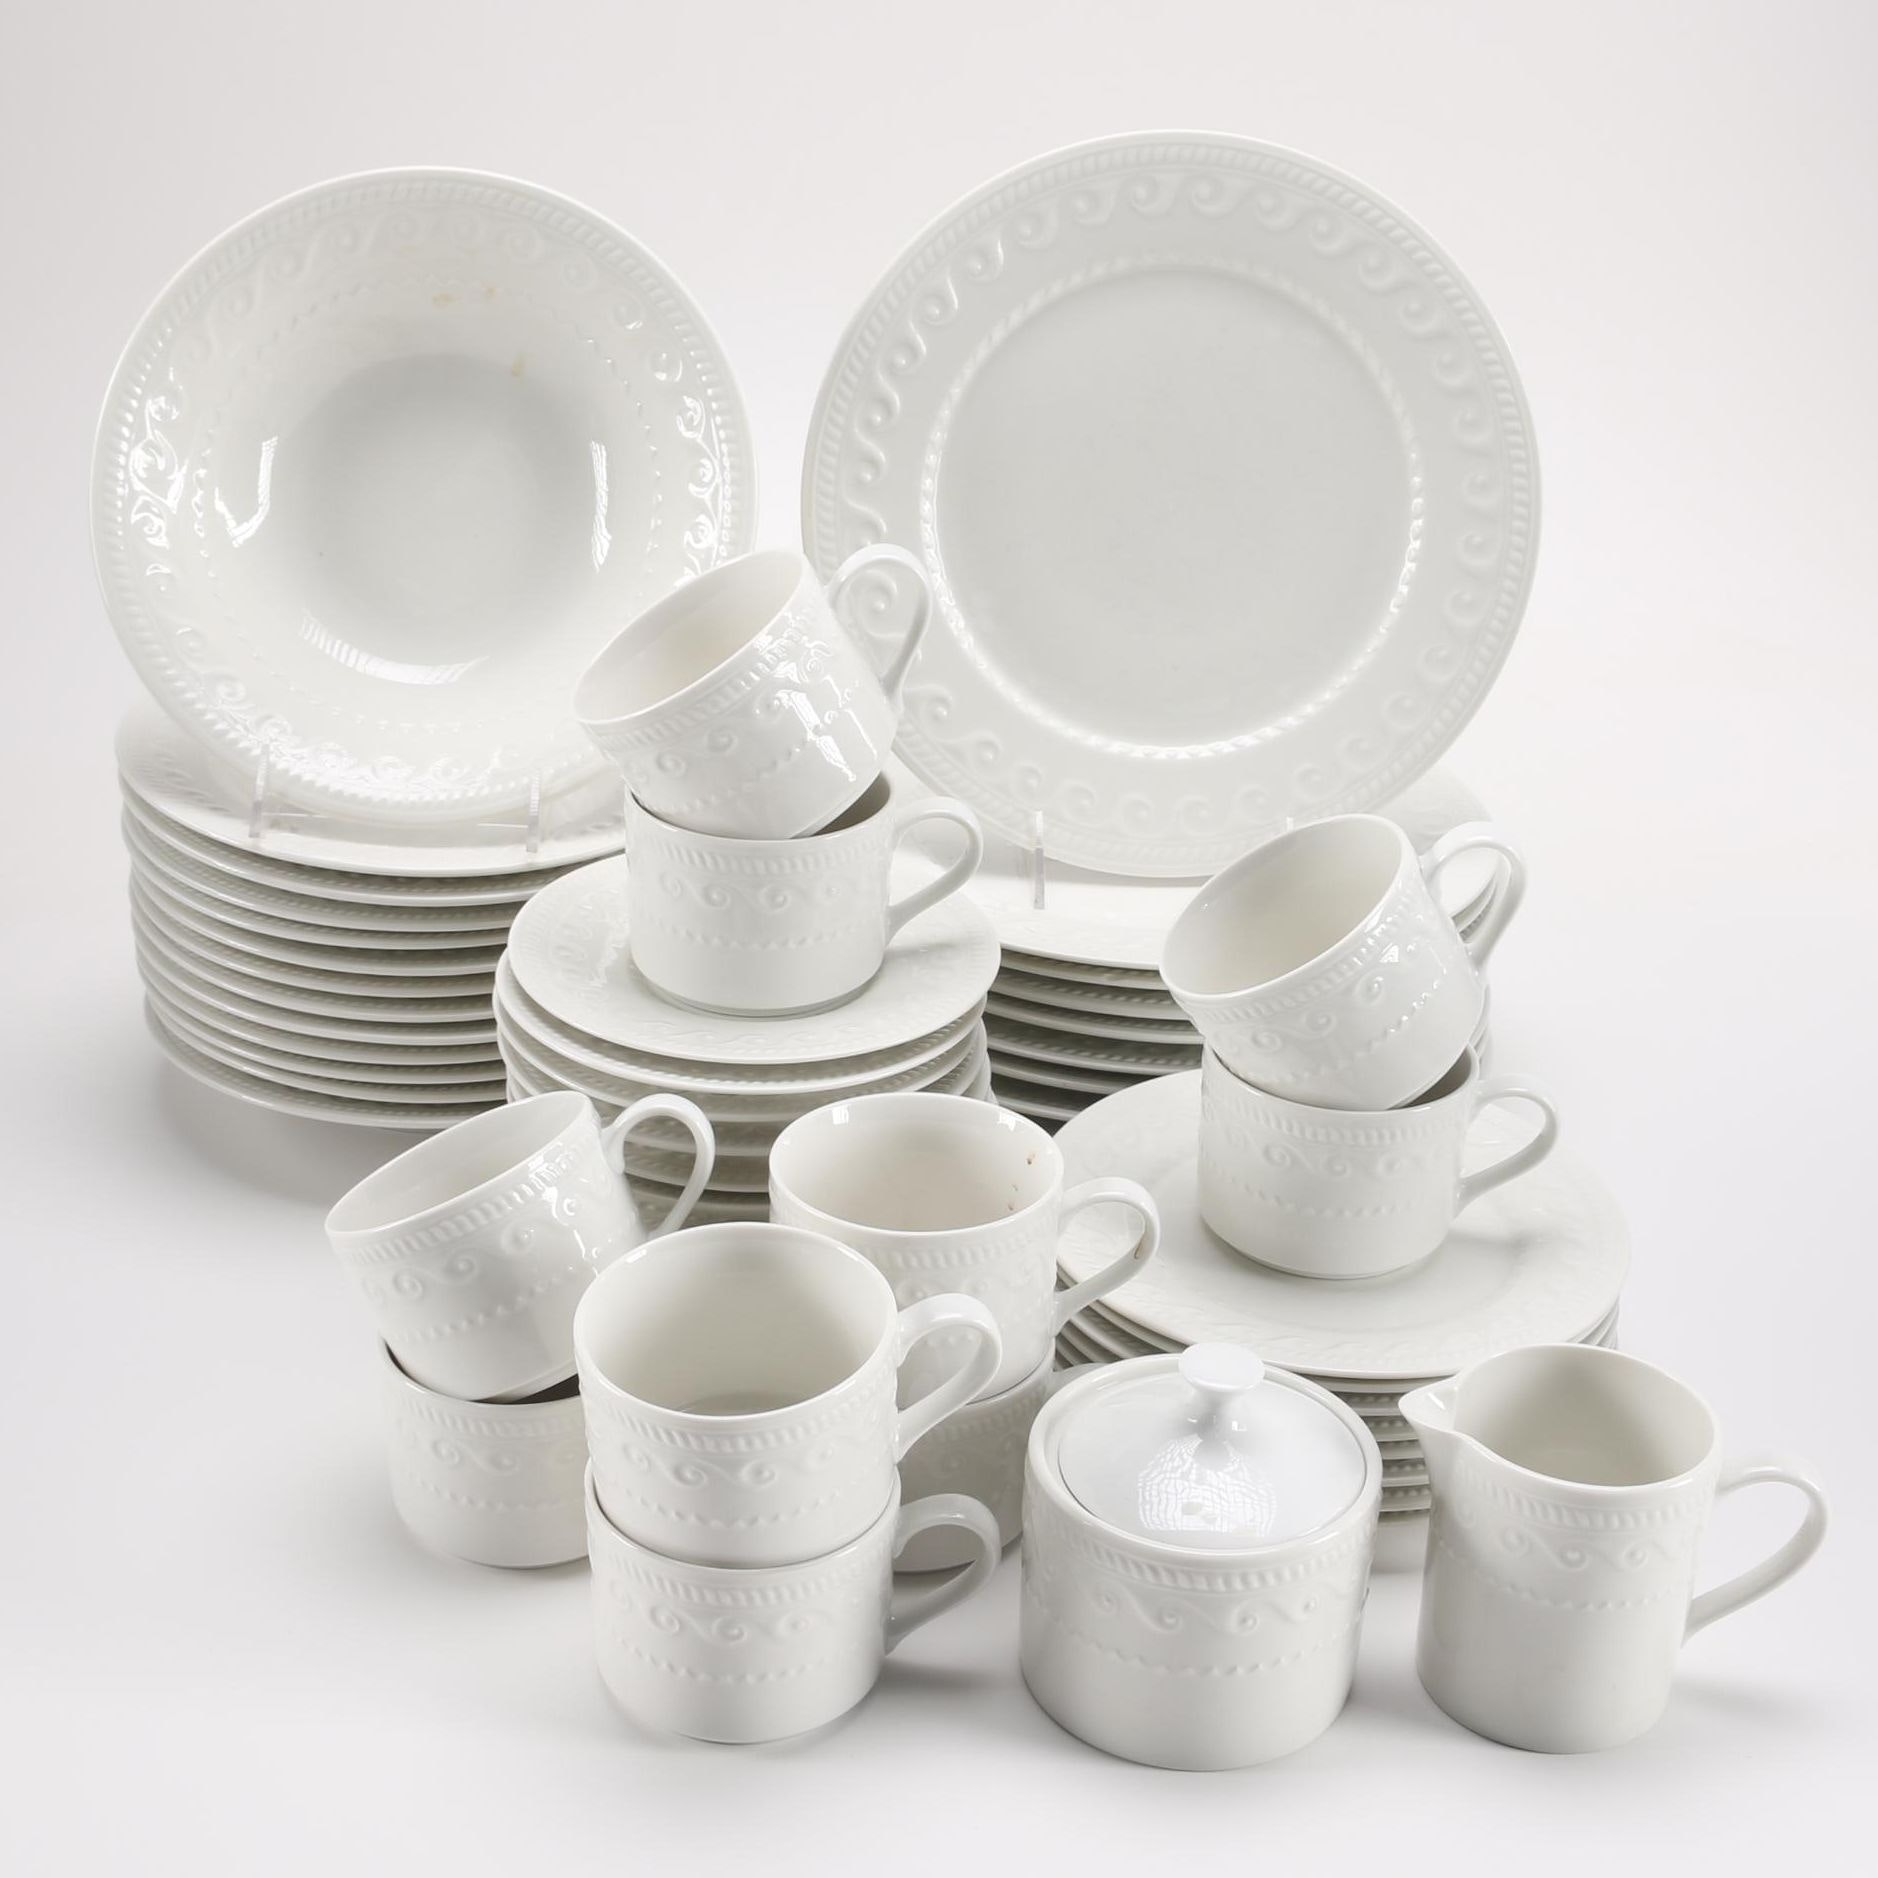 Sango Cachet Stoneware Dinner Set EBTH & Marvellous Sango Dinnerware Sets Pictures - Best Image Engine ...